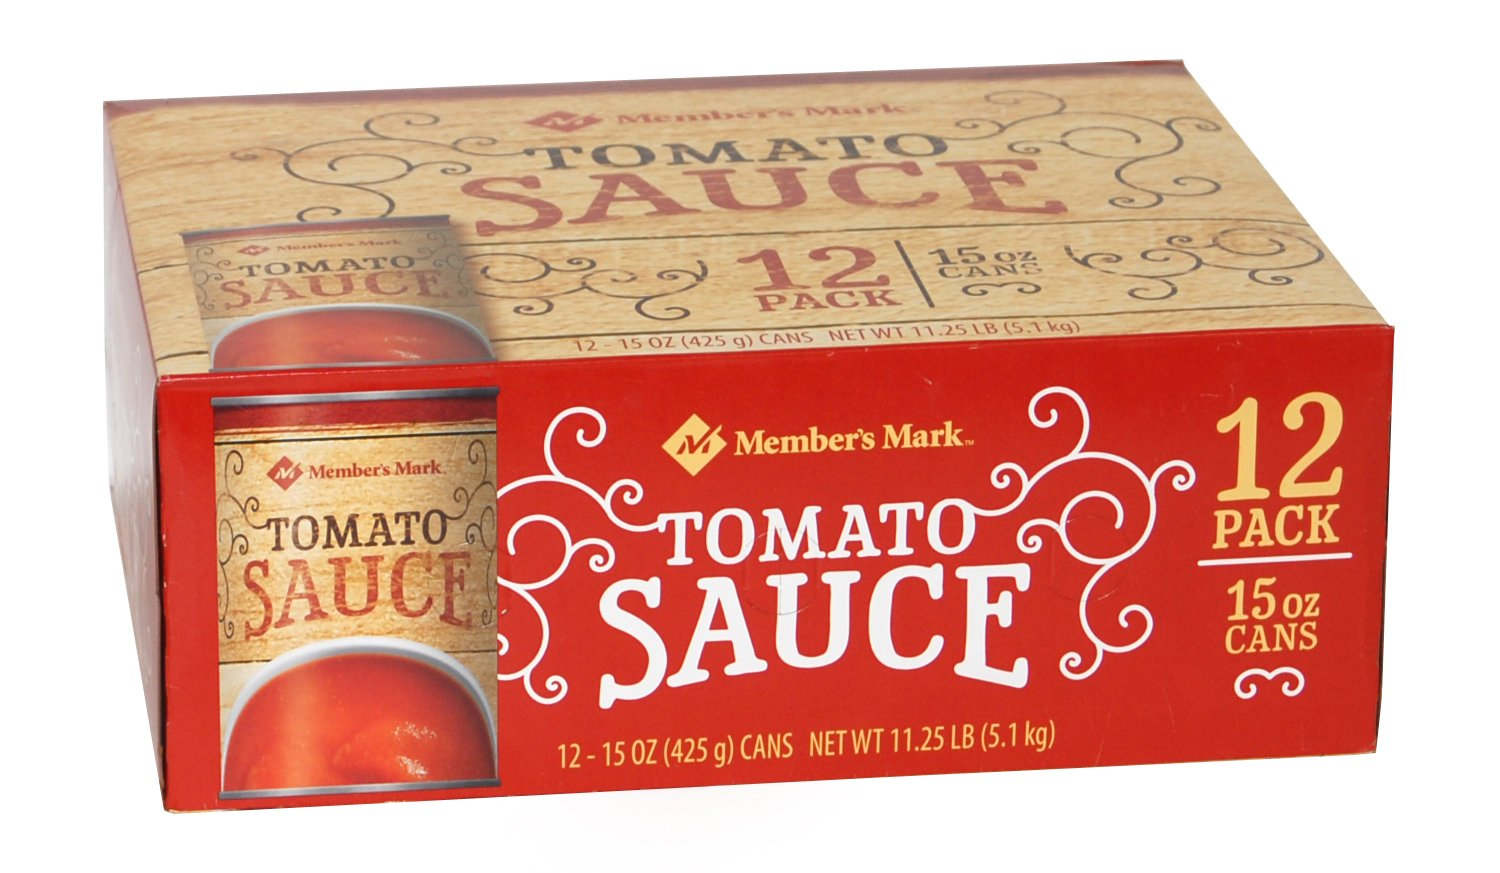 Member's Mark free Tomato Sauce 12 15 Cans Ounce Special Campaign -